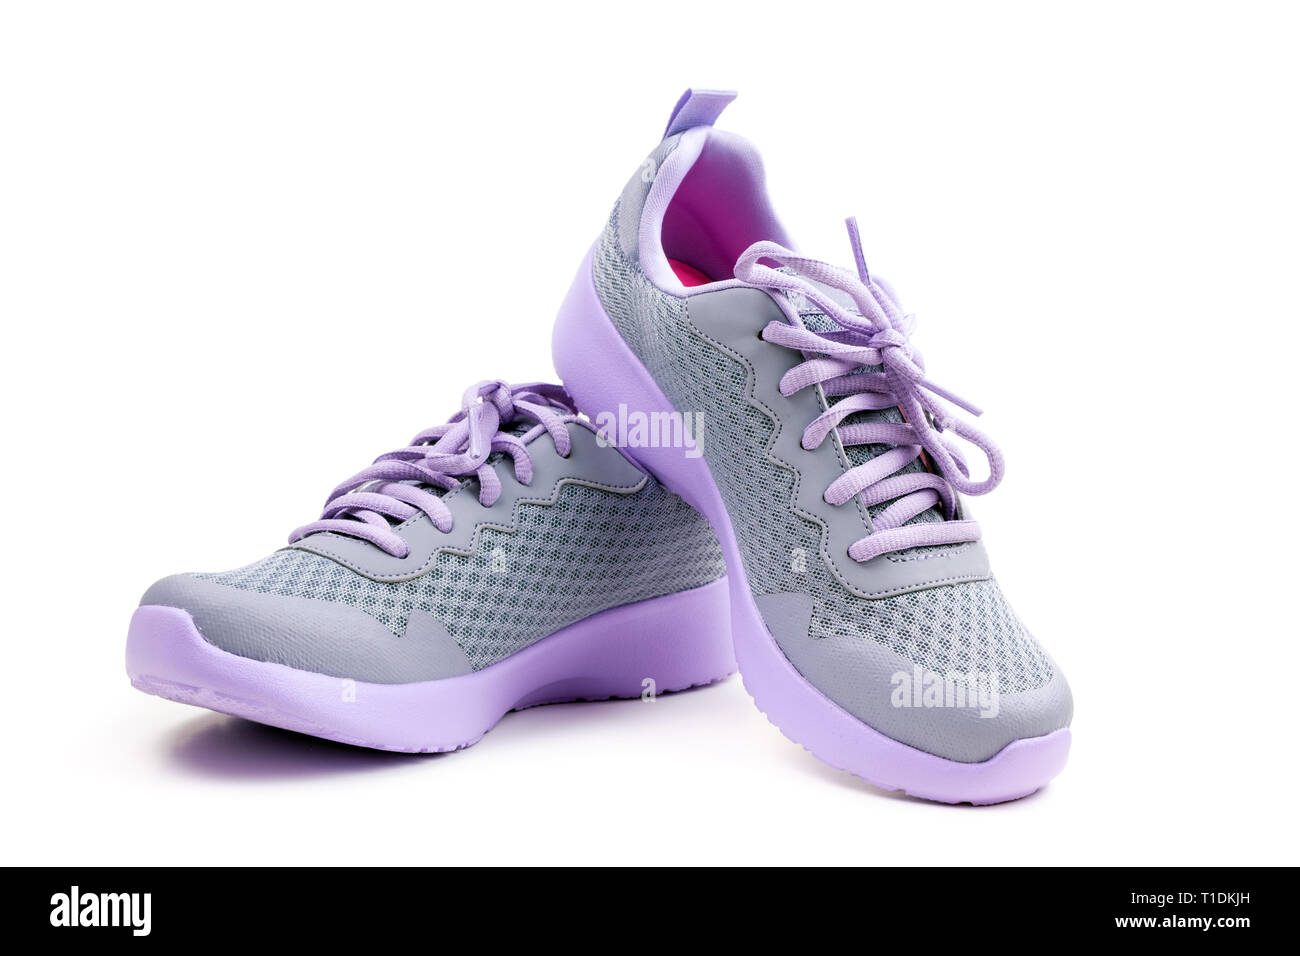 Unbranded purple running shoes on a white background Stock Photo